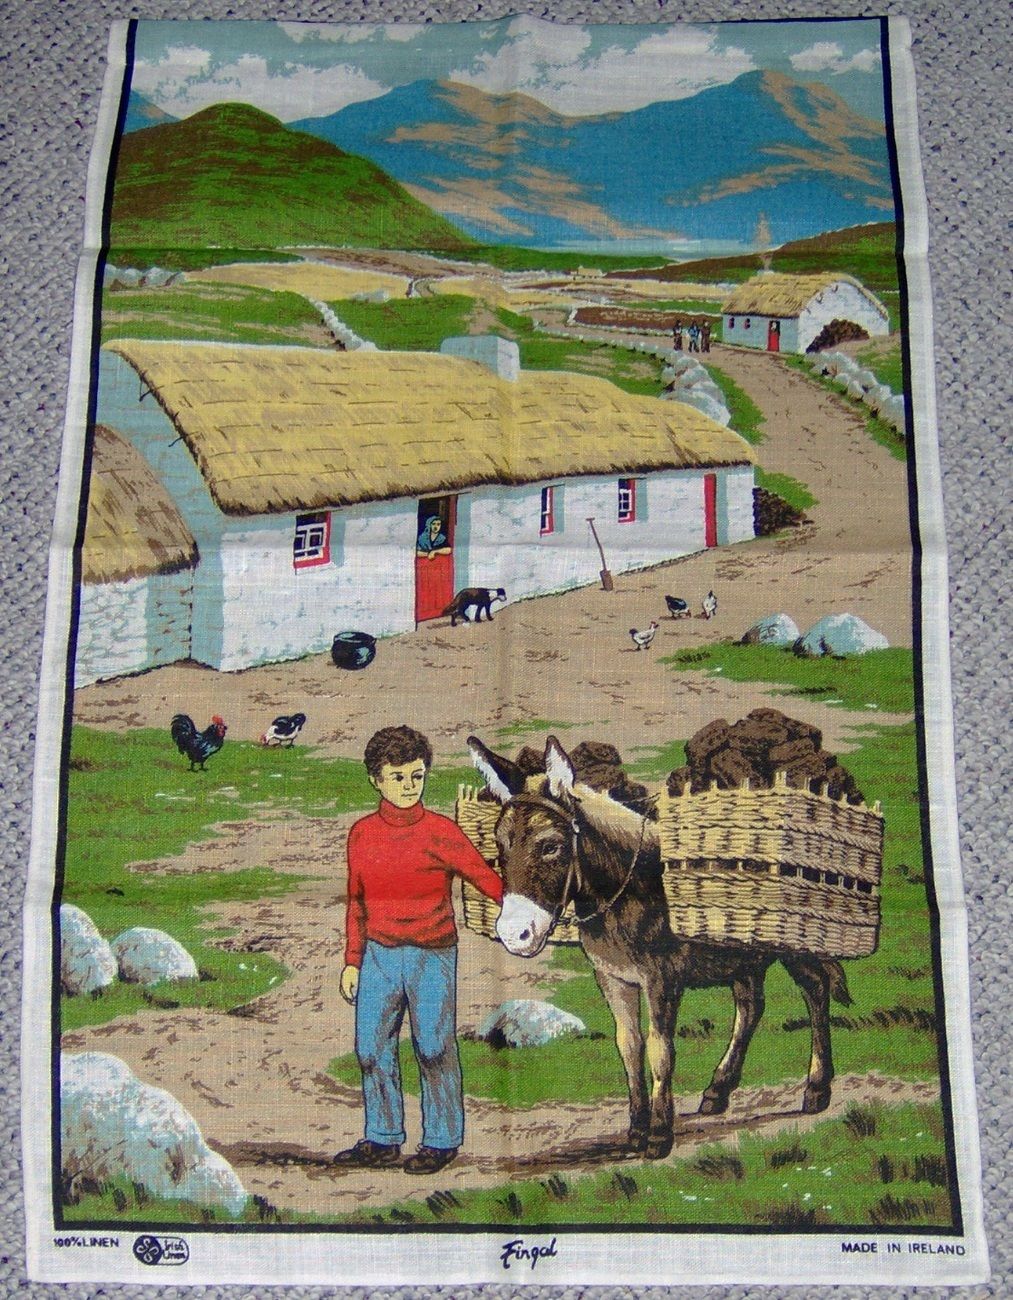 Irish Linen Wall Hanging Fingal Thatched Roof Cottage Boy Donkey